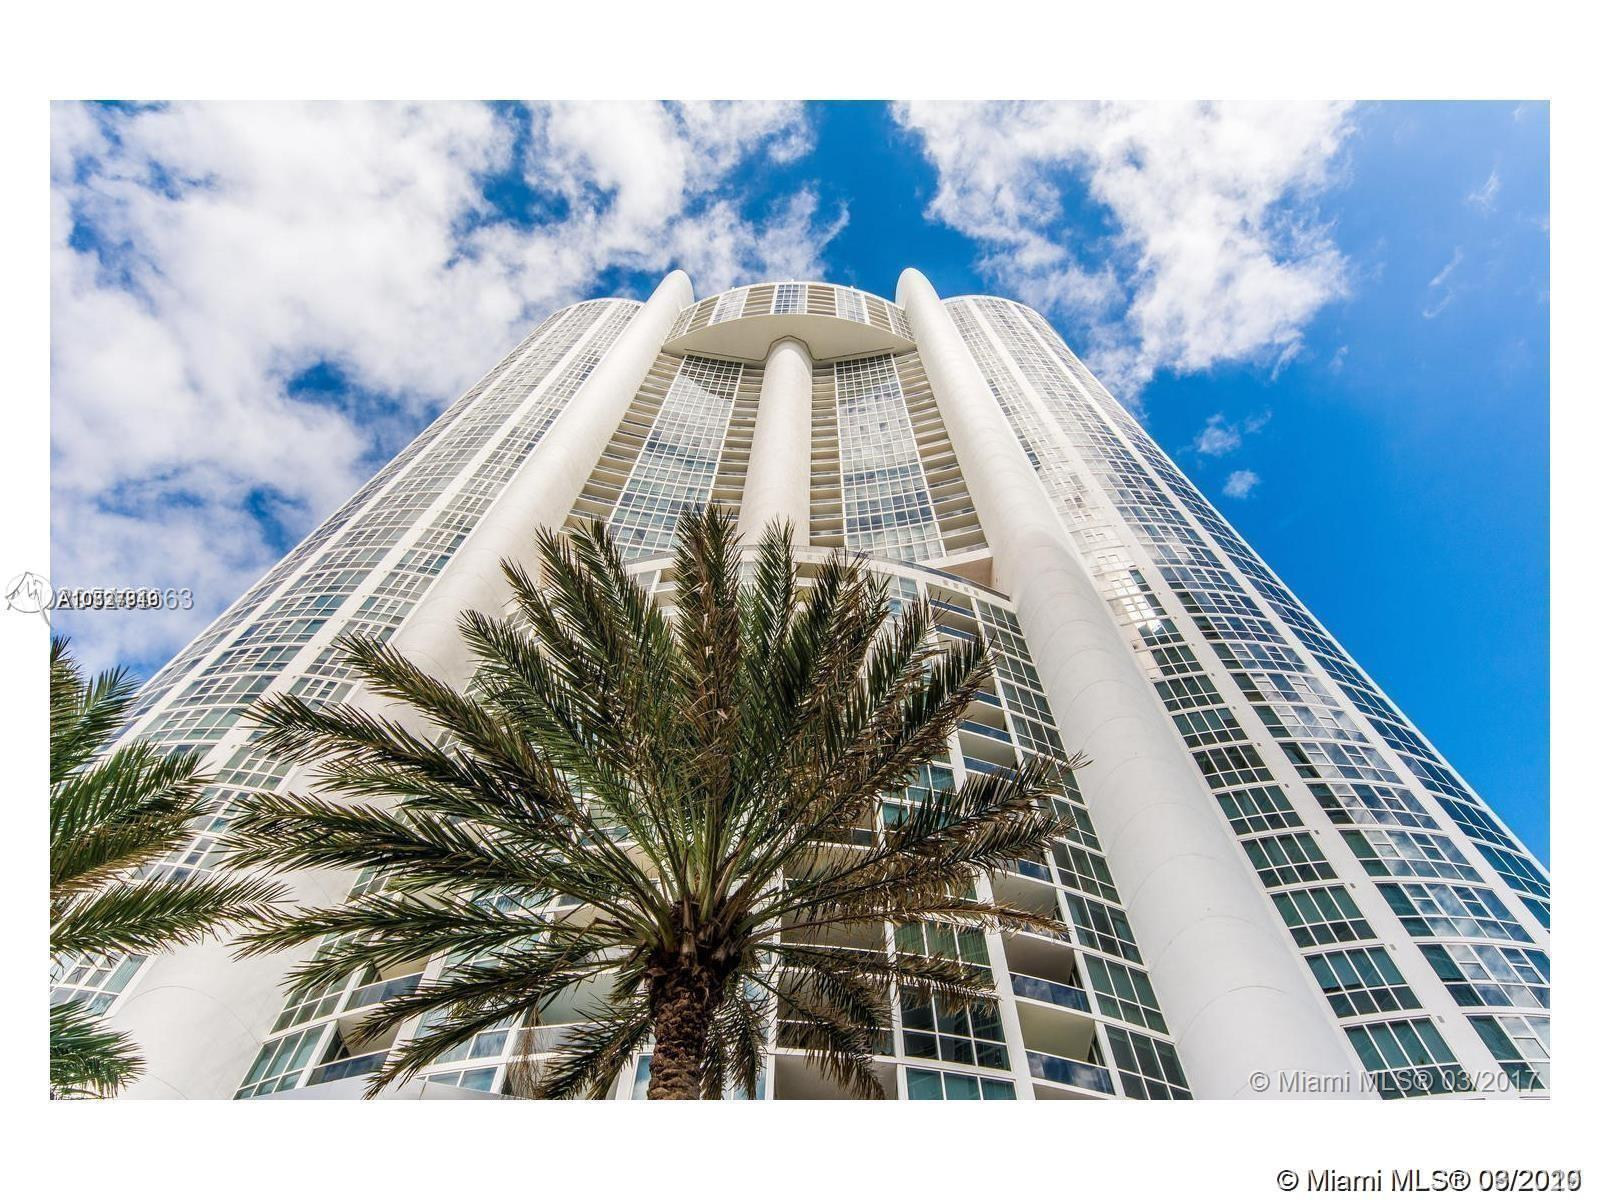 FIVE STAR LUXURY  BEAUTIFUL TRUMP ROYALE.  1BR/1.5BA UNIT WITH INTRACOASTAL AND OCEAN VIEWS IS READY FOR YOU TO EXPERIENCE SUNNY ISLES BEACH! MARBLE FLOORS, STAINLESS STEEL APPLIANCES,CUSTOM CLOSETS, SPA SERVICE, 3 POOLS, JACUZZI, TENNIS COURTS, VALET PARKING 24HRS, 5 STAR HOTEL SERVICES & AMENITIES.